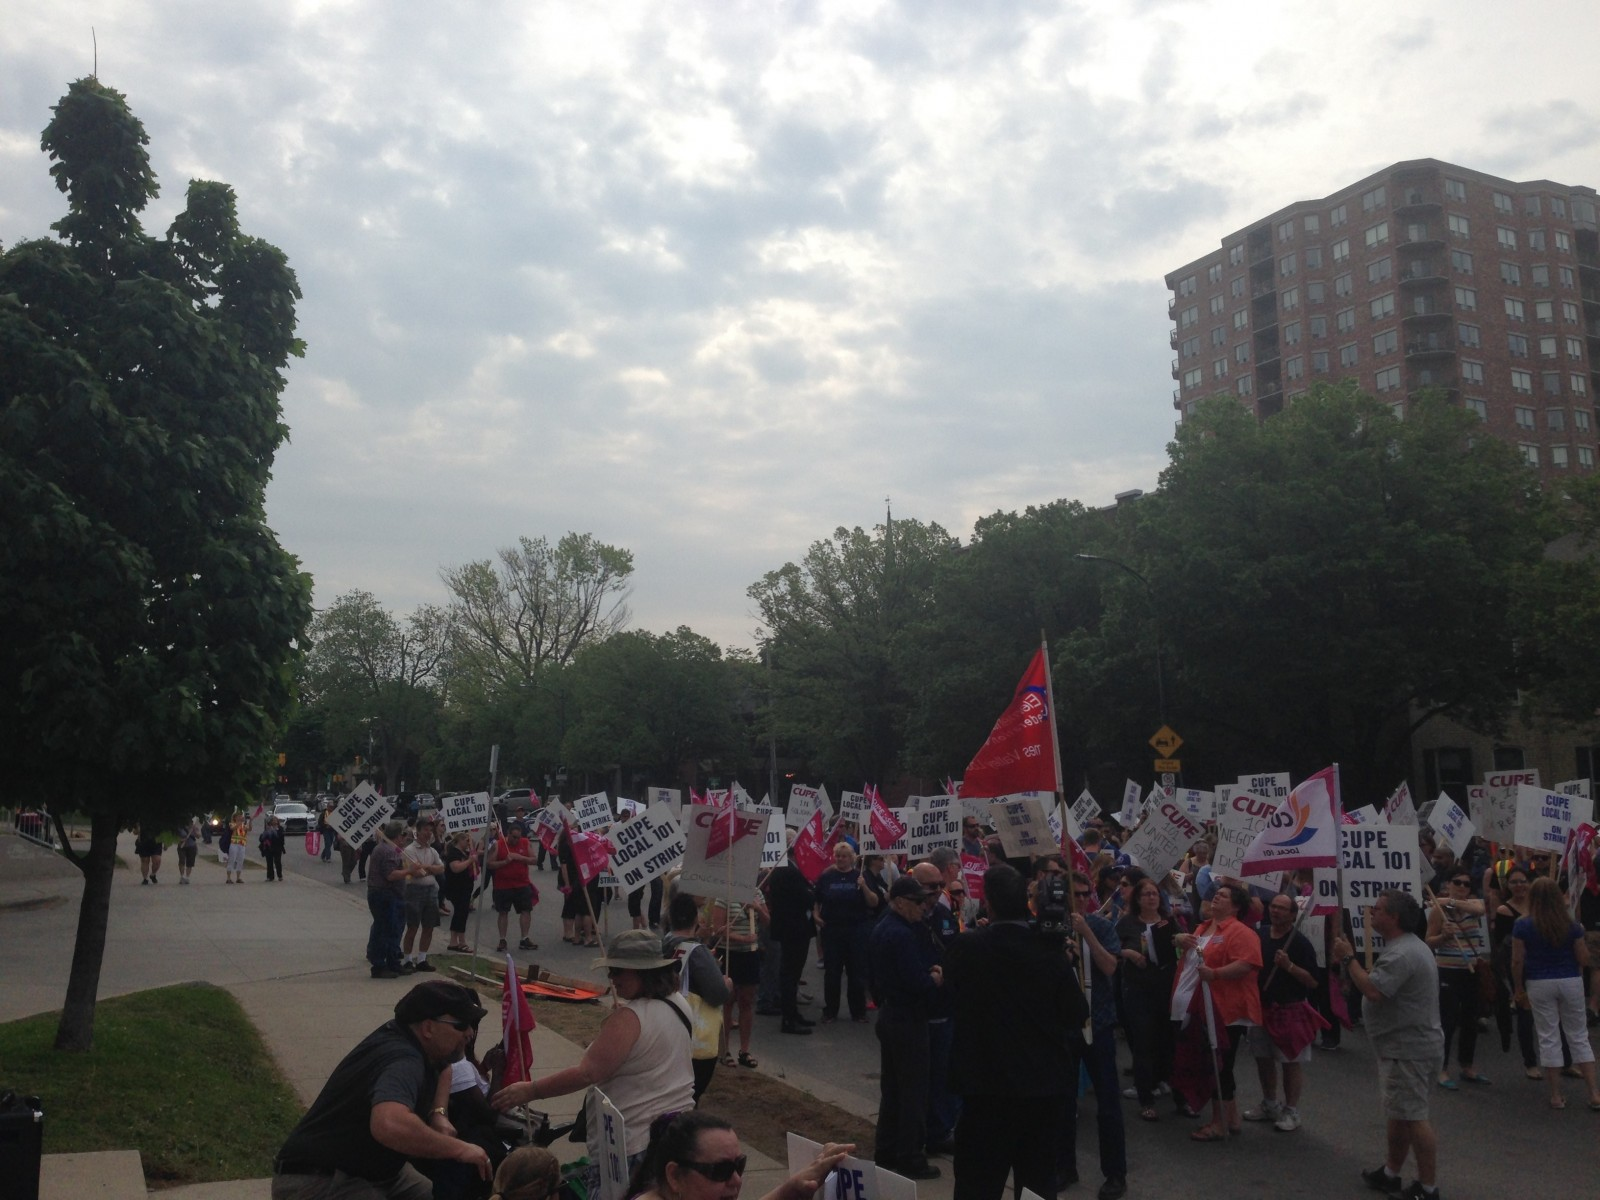 City clarifies its proposal to CUPE in hopes to resume talks